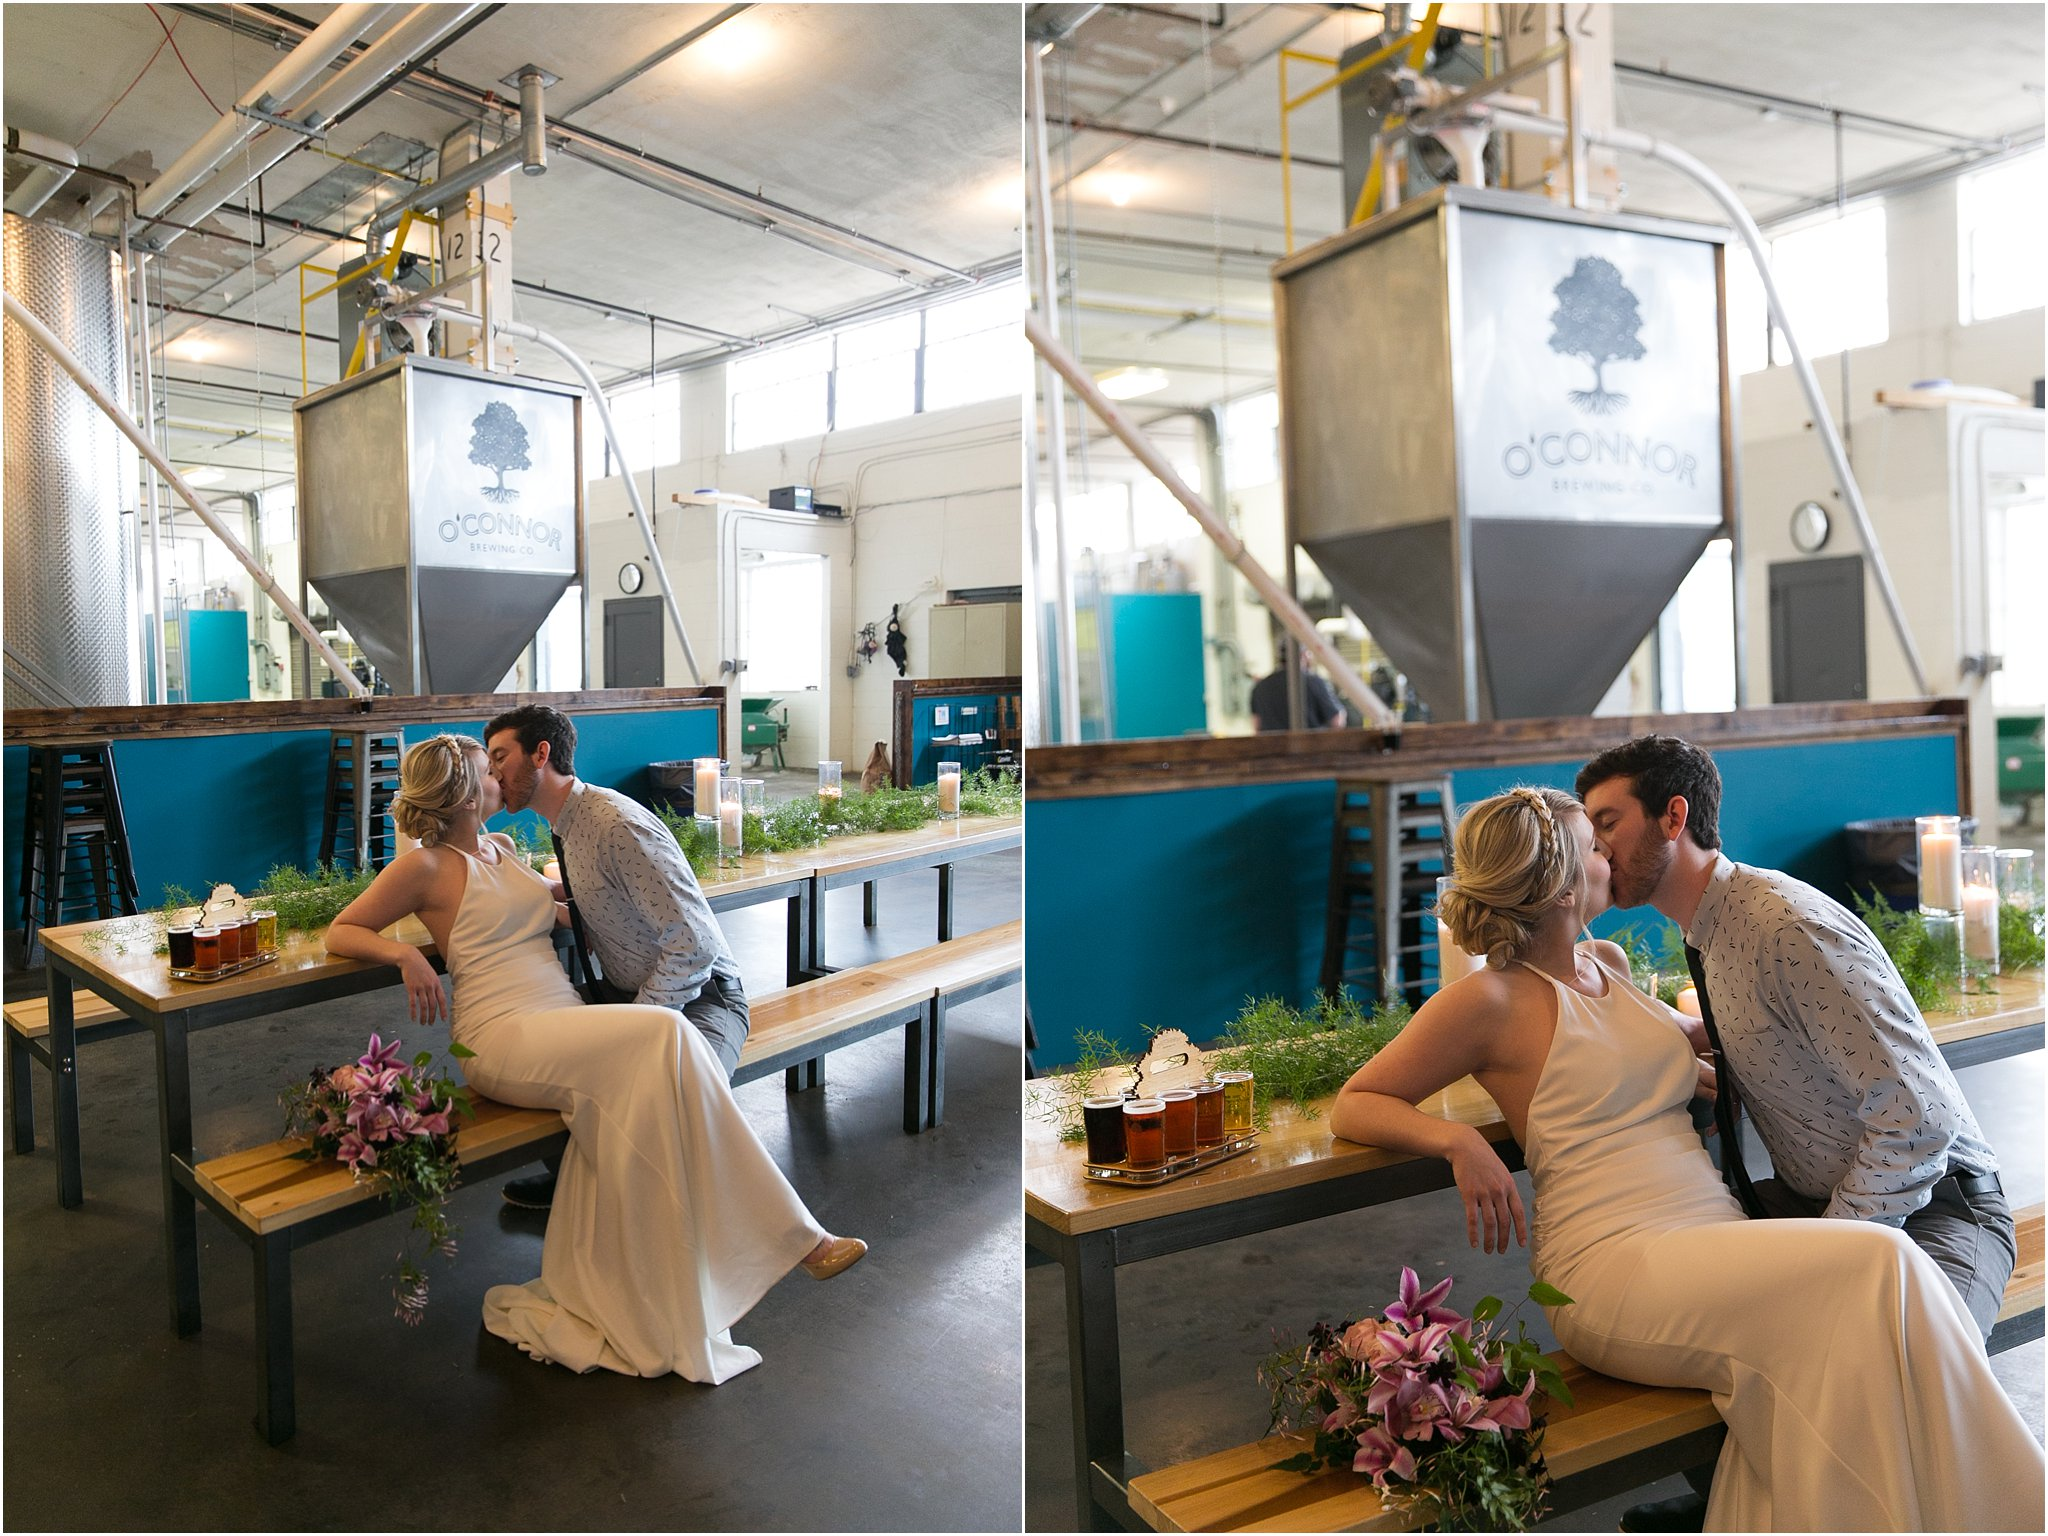 jessica_ryan_photography_oconnor_brewing_wedding_oconnor_brewing_co_norfolk_virginia_roost_flowers_blue_birds_garage__0829